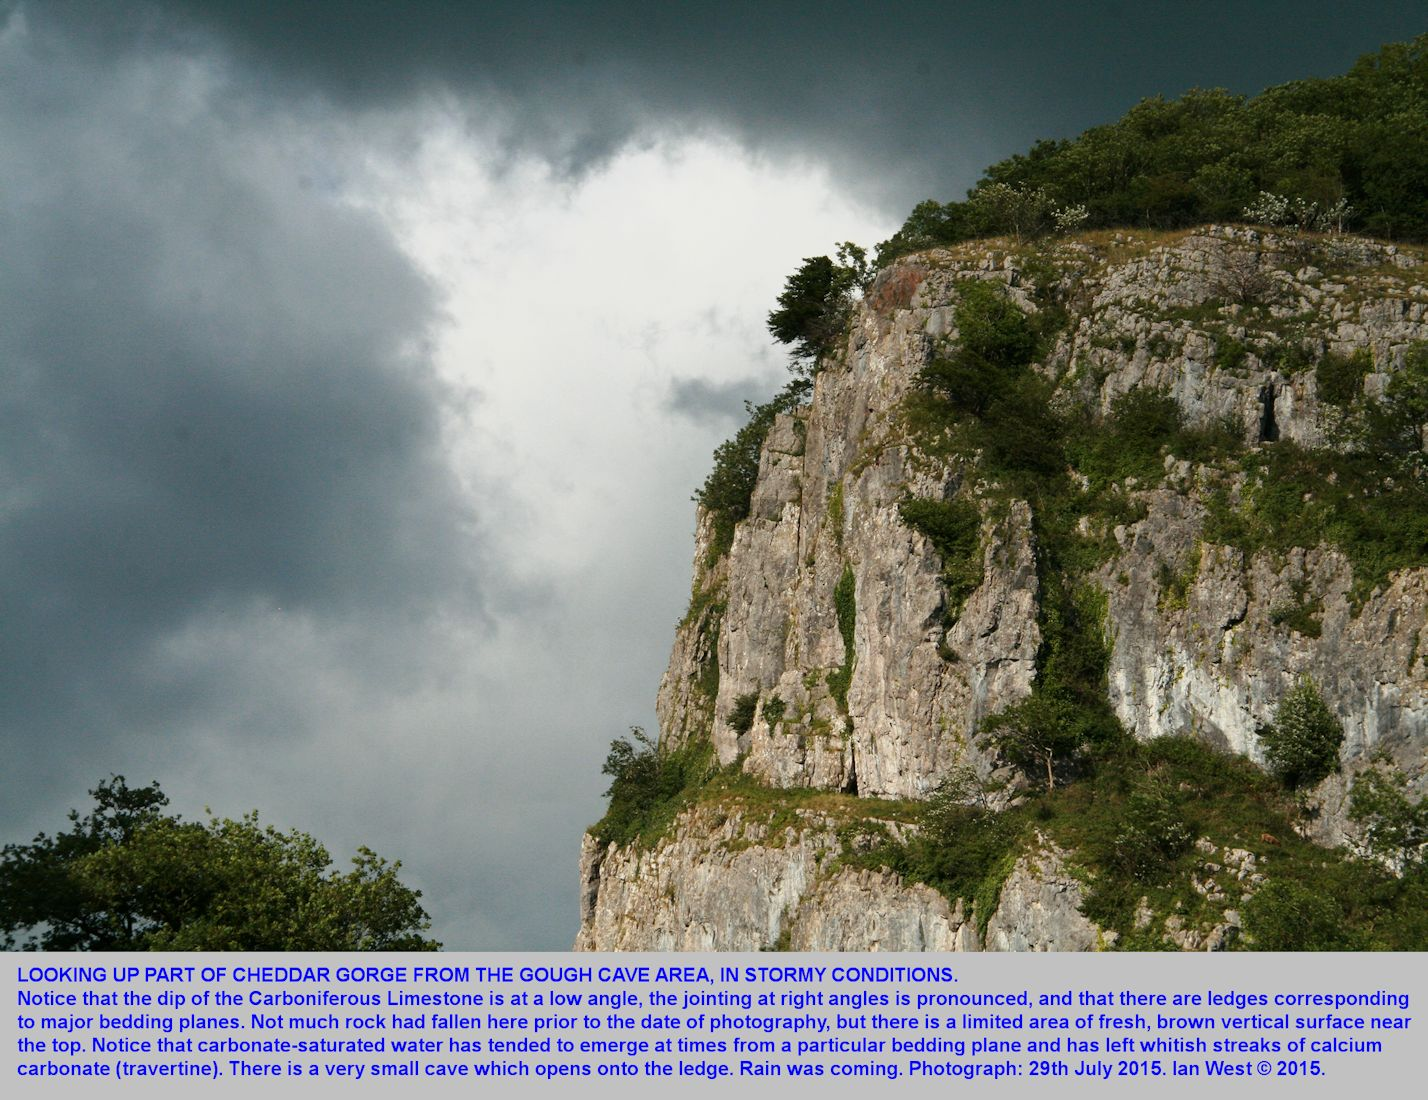 From near Gough's Cave, looking up Cheddar Gorge, Mendip Hills, Somerset, in stormy conditions, with approaching rain